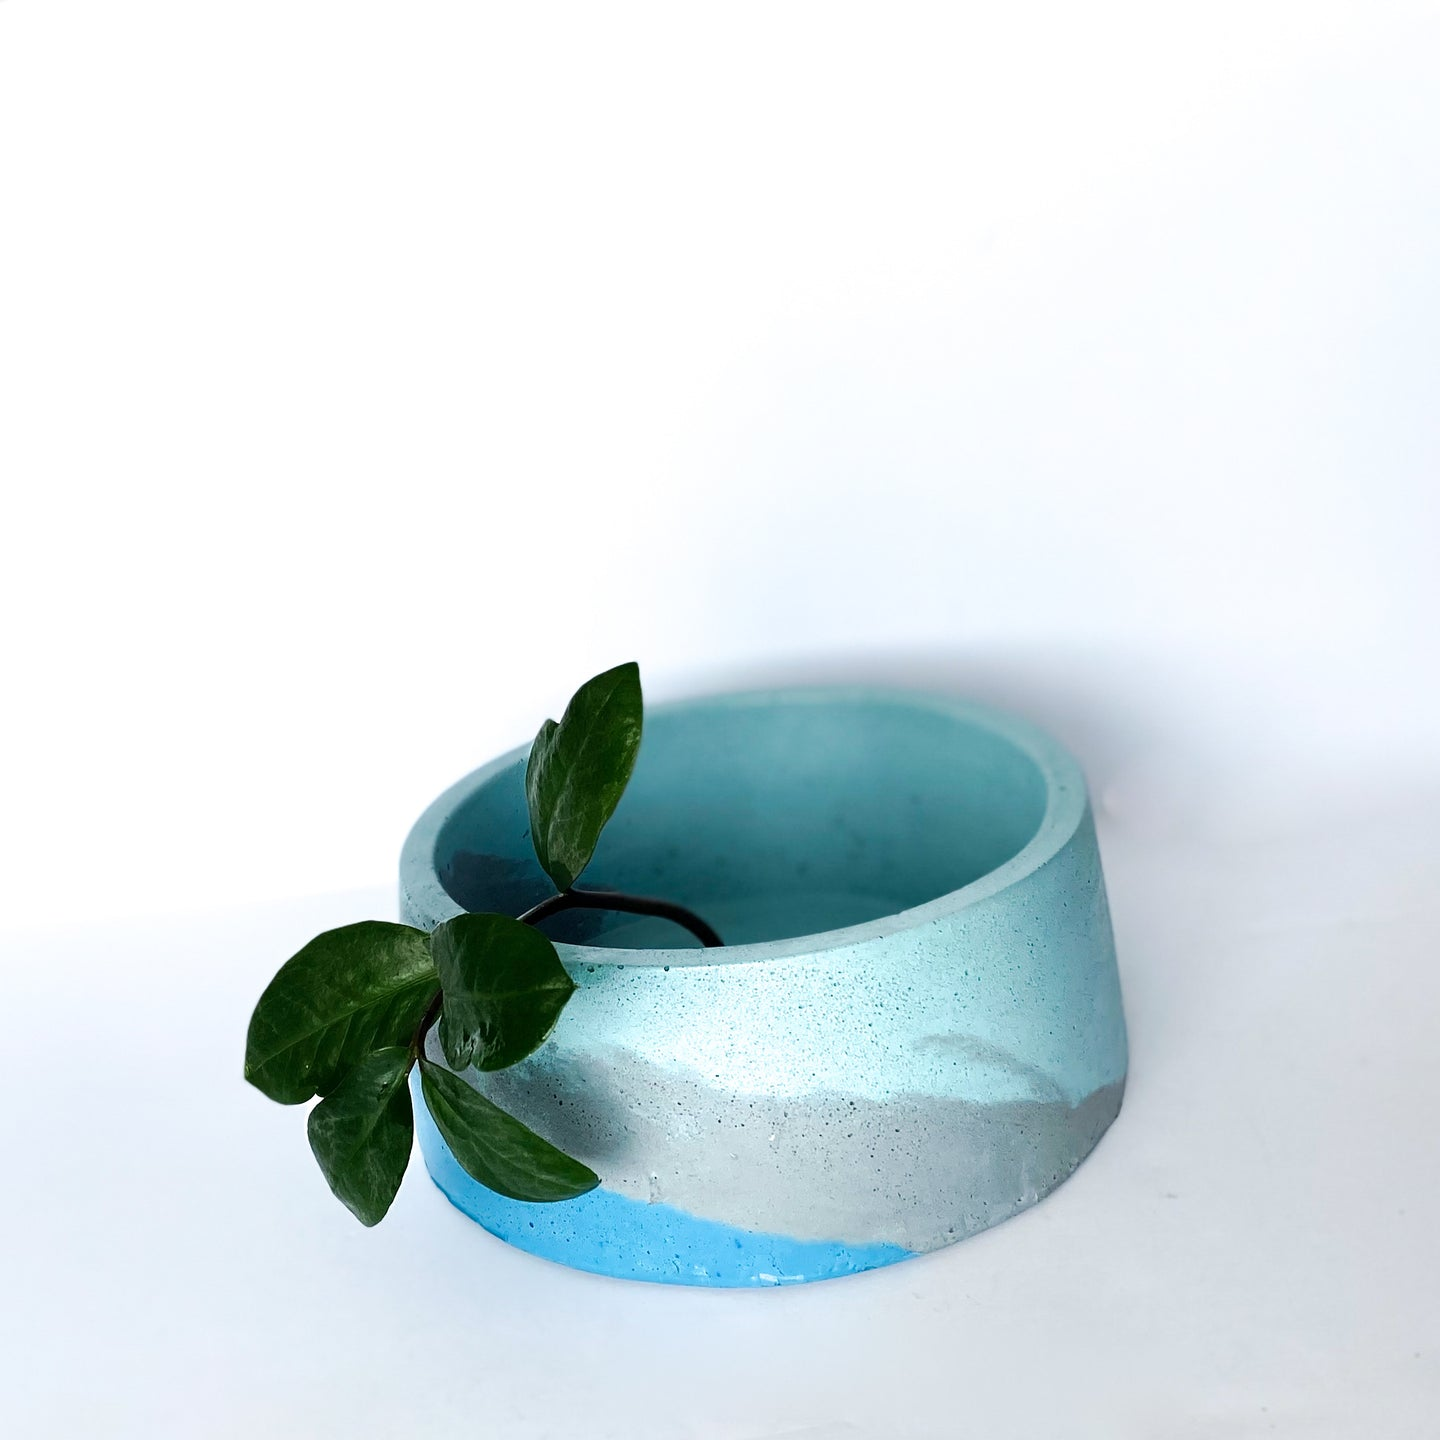 Concrete circular planter with drain hole